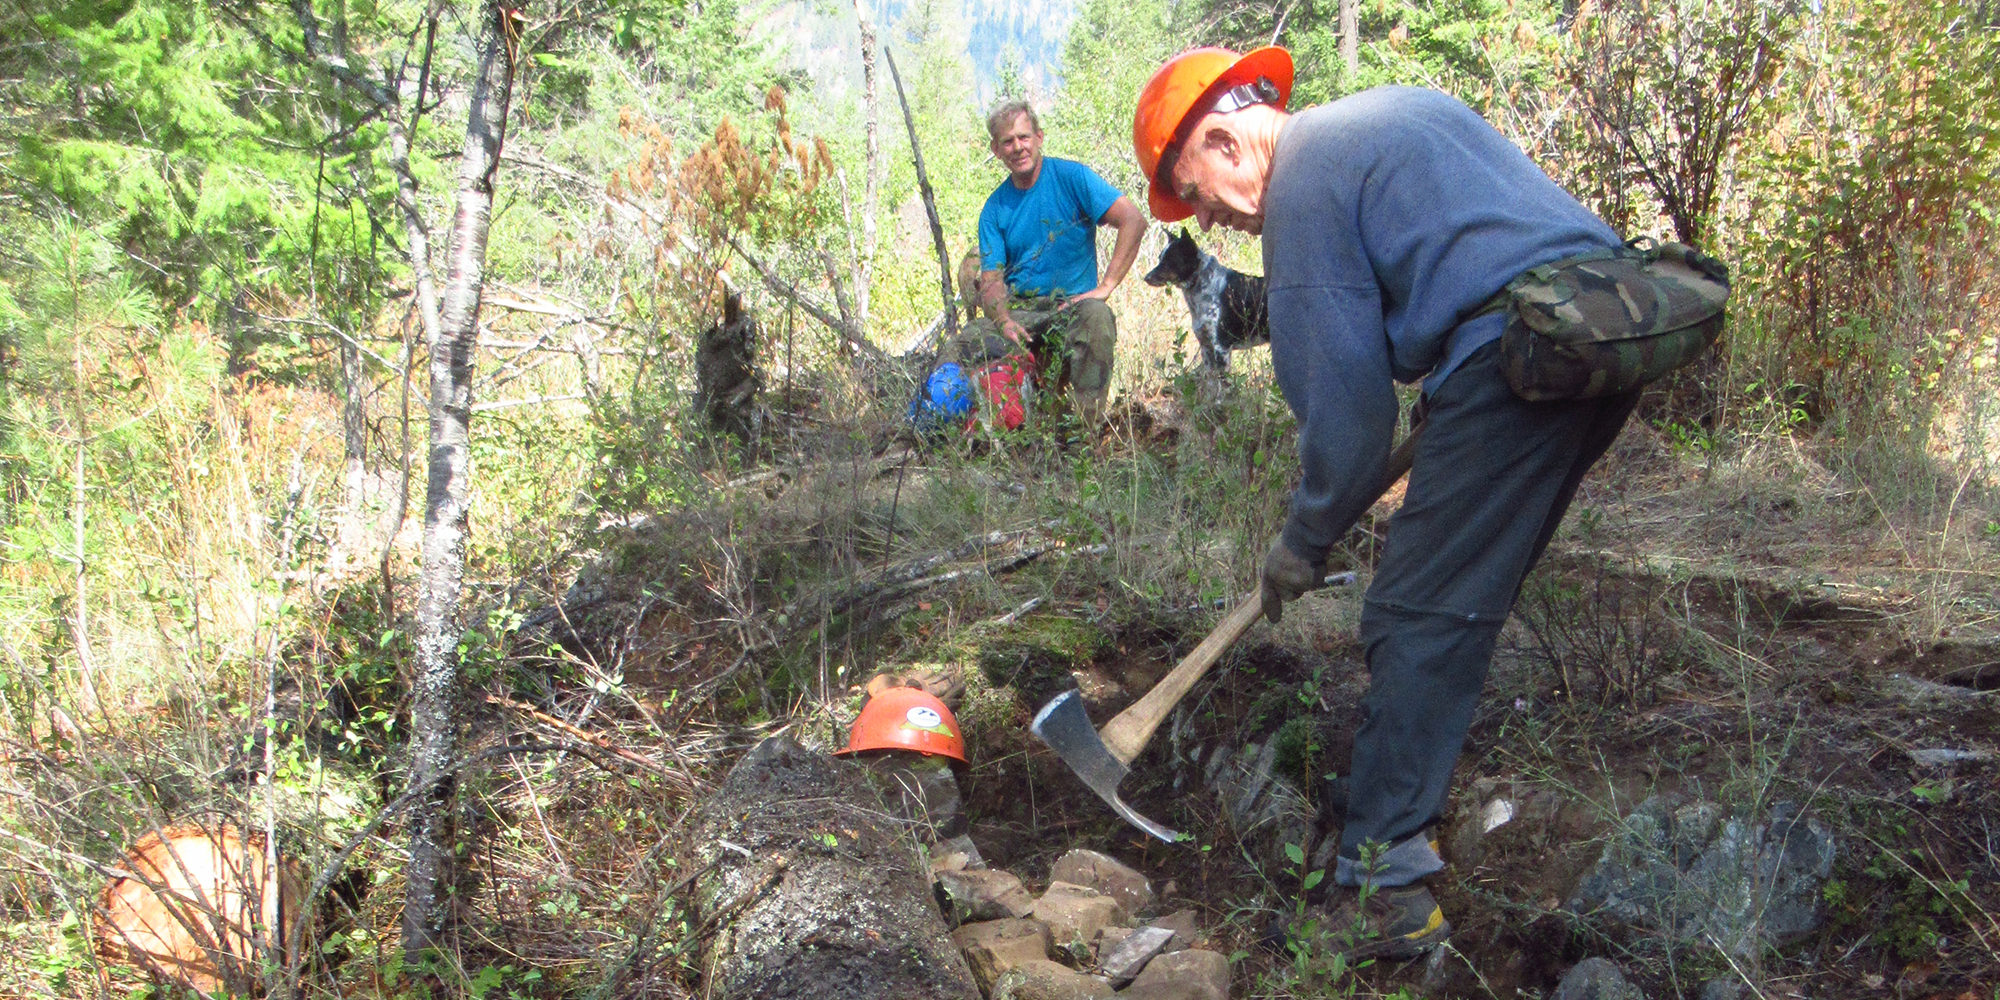 Scotchman Peaks trails: Open and ready for hiking and hunting season